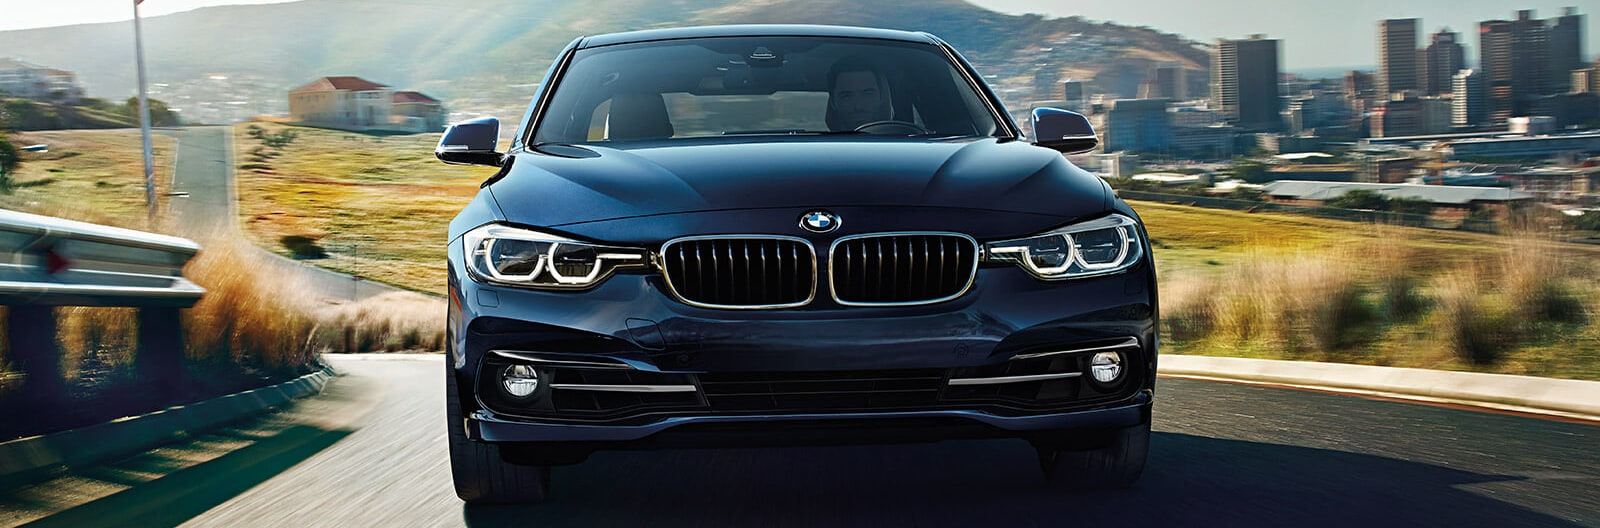 Nalley BMW of Decatur